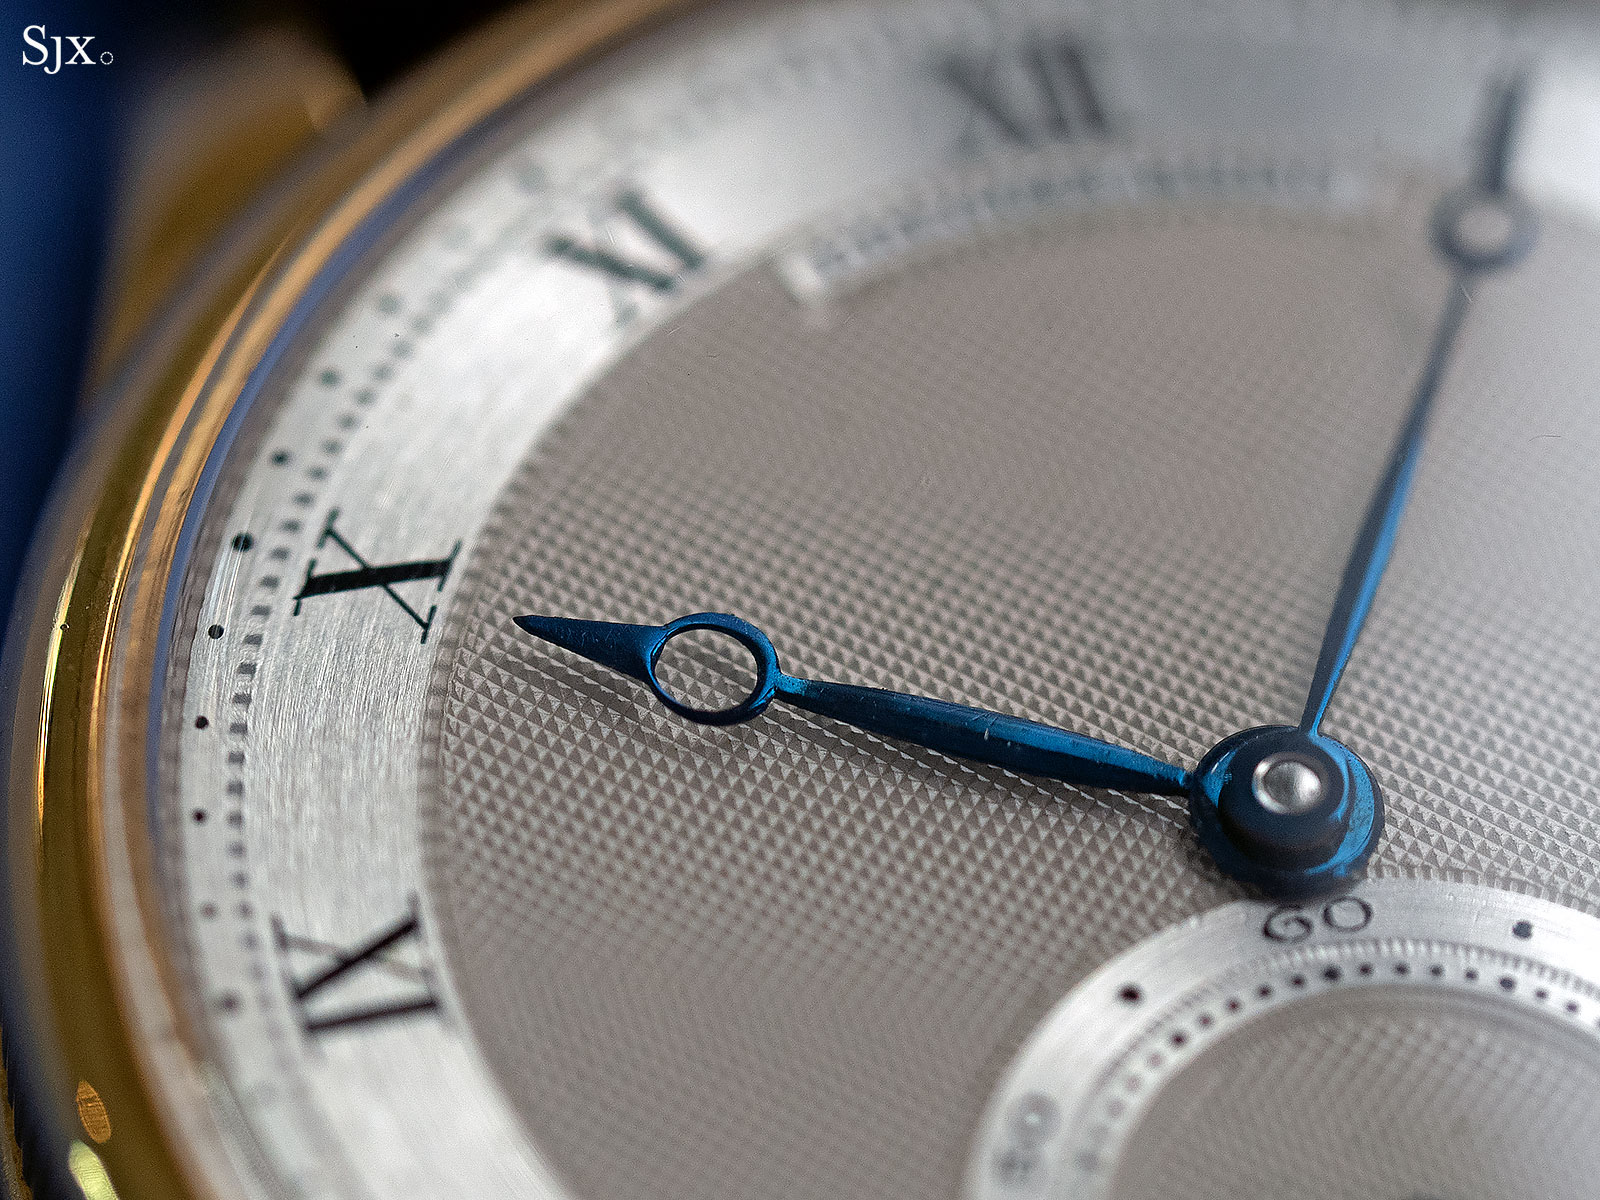 Breguet time-only chronometer 4296-4